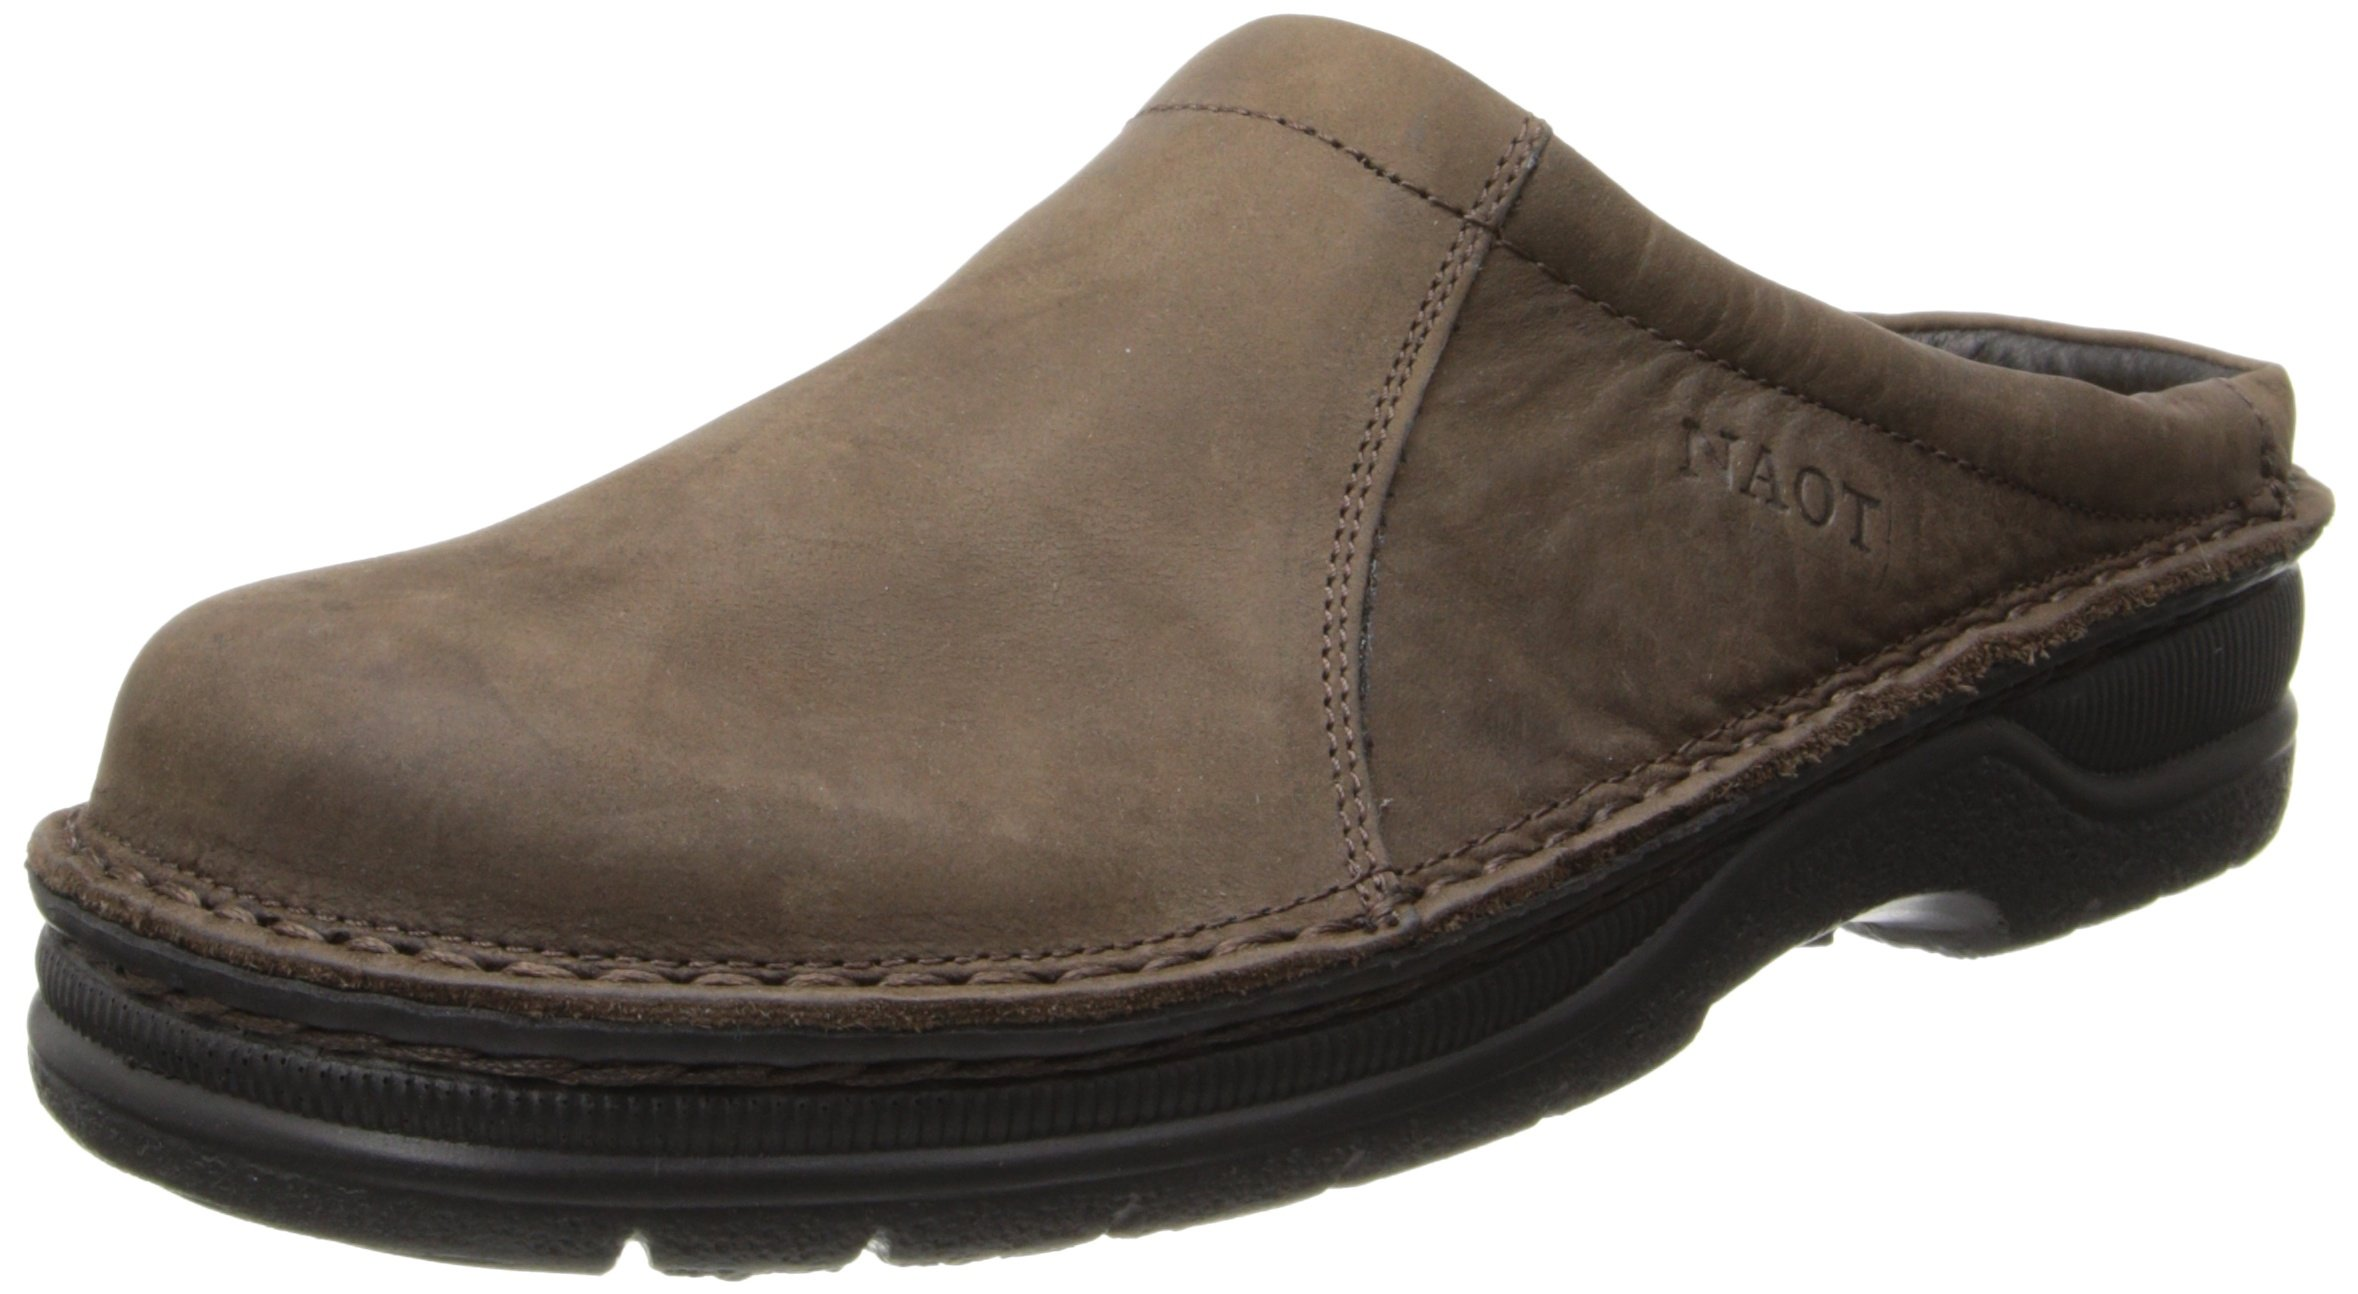 Naot Men's Bjorn Flat,Oily Brown Nubuck,43 EU/10-10.5 M US by NAOT